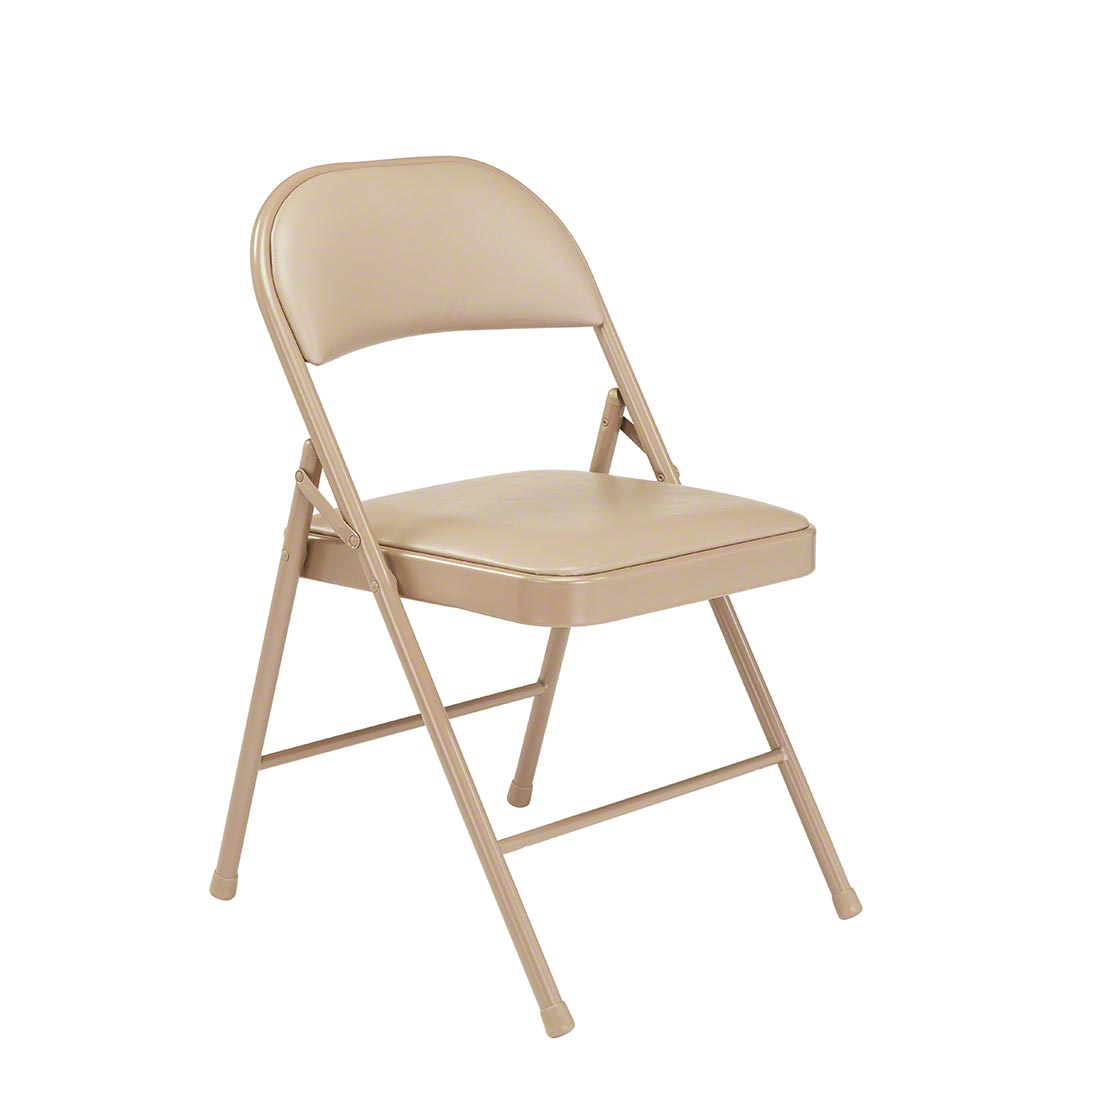 Peachy National Public Seating 951 Commercialine Vinyl Padded Steel Folding Chair Beige Theyellowbook Wood Chair Design Ideas Theyellowbookinfo